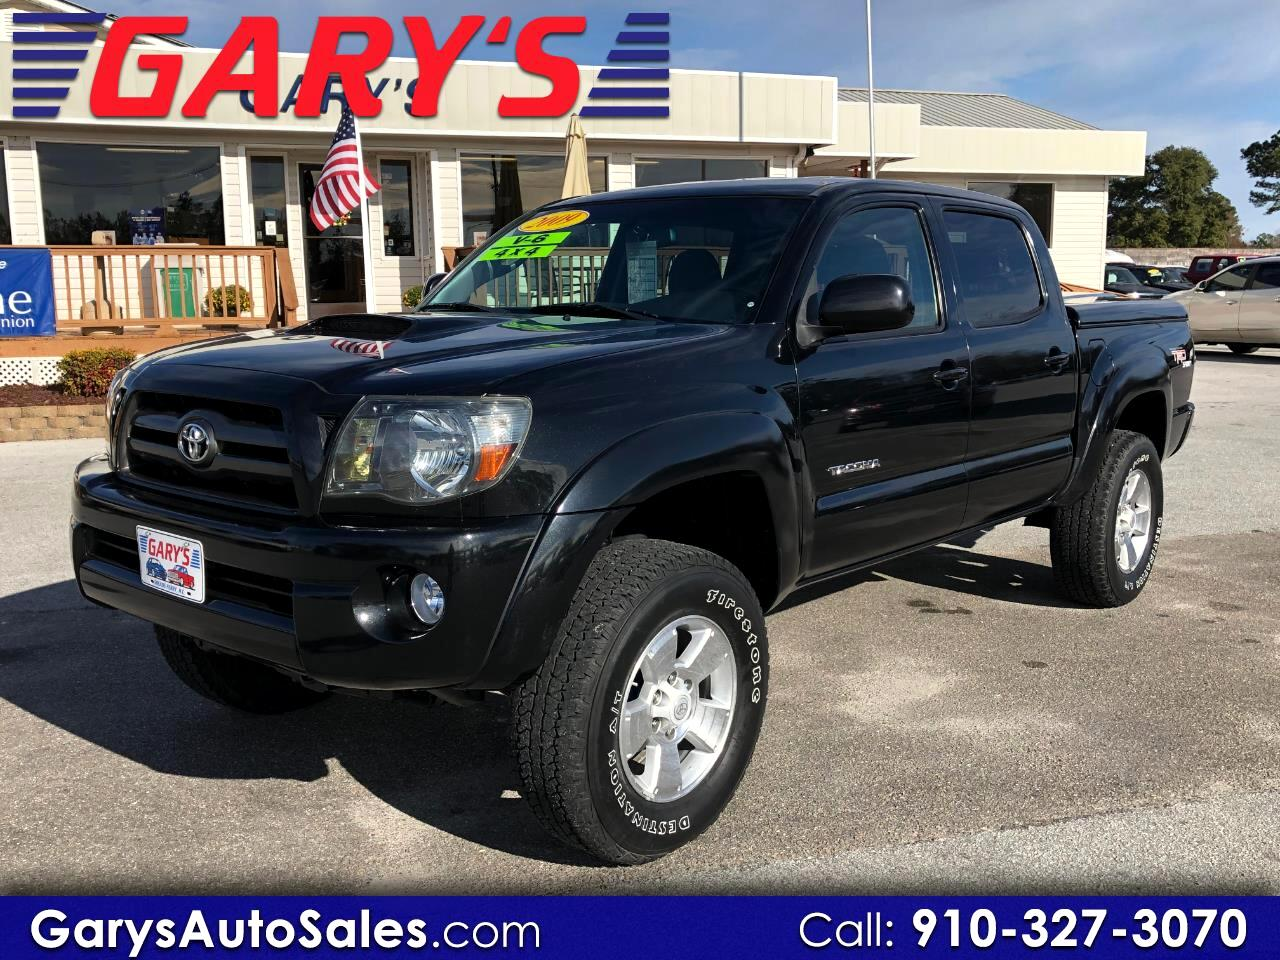 2009 Toyota Tacoma SR5 W/ TRD SPORT PACKAGE